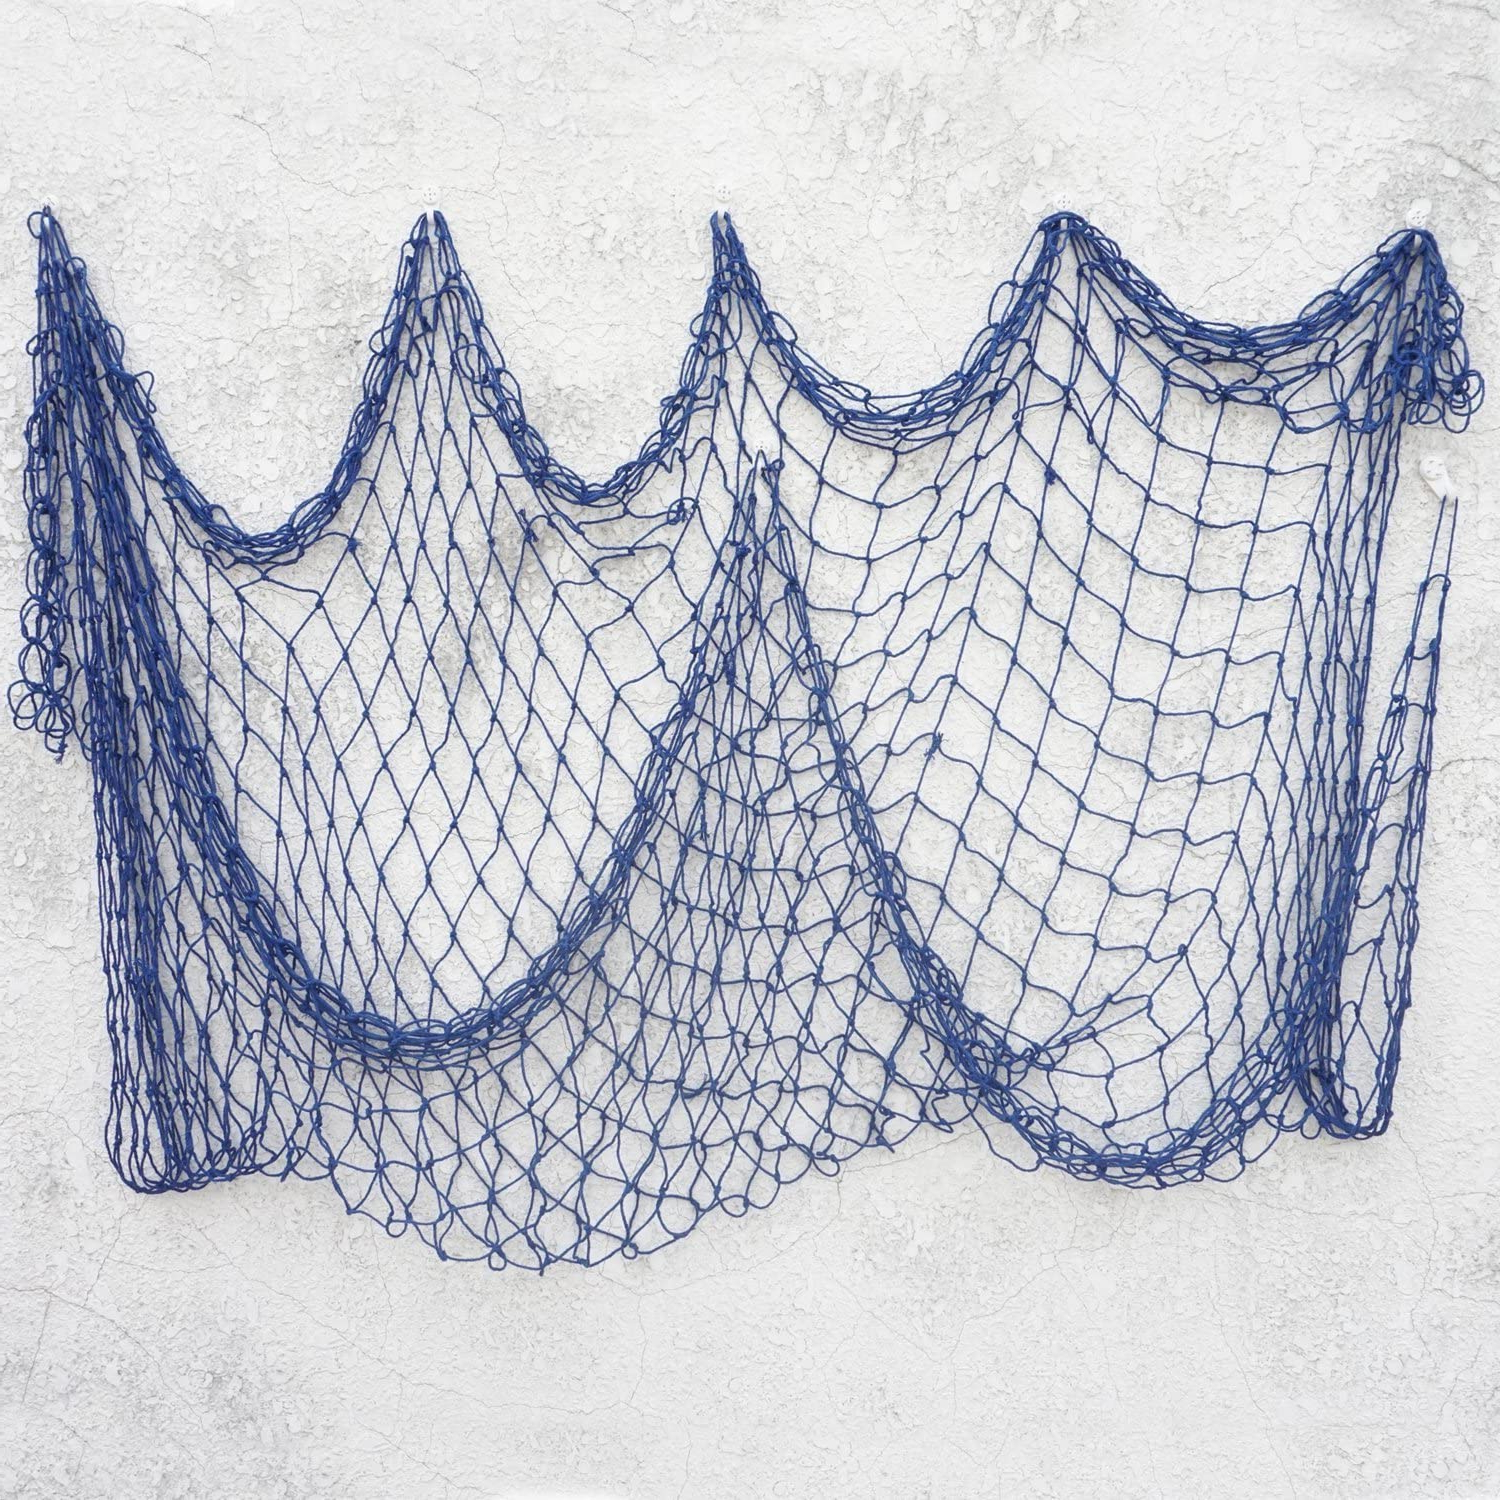 2019 Handcrafted Hanging Fish In Net Wall Décor Intended For Bilipala Decorative Fish Netting, Fishing Net Decor, Ocean Pirate Beach Theme Party Decorations, Mediterranean Decor, Blue (View 16 of 20)